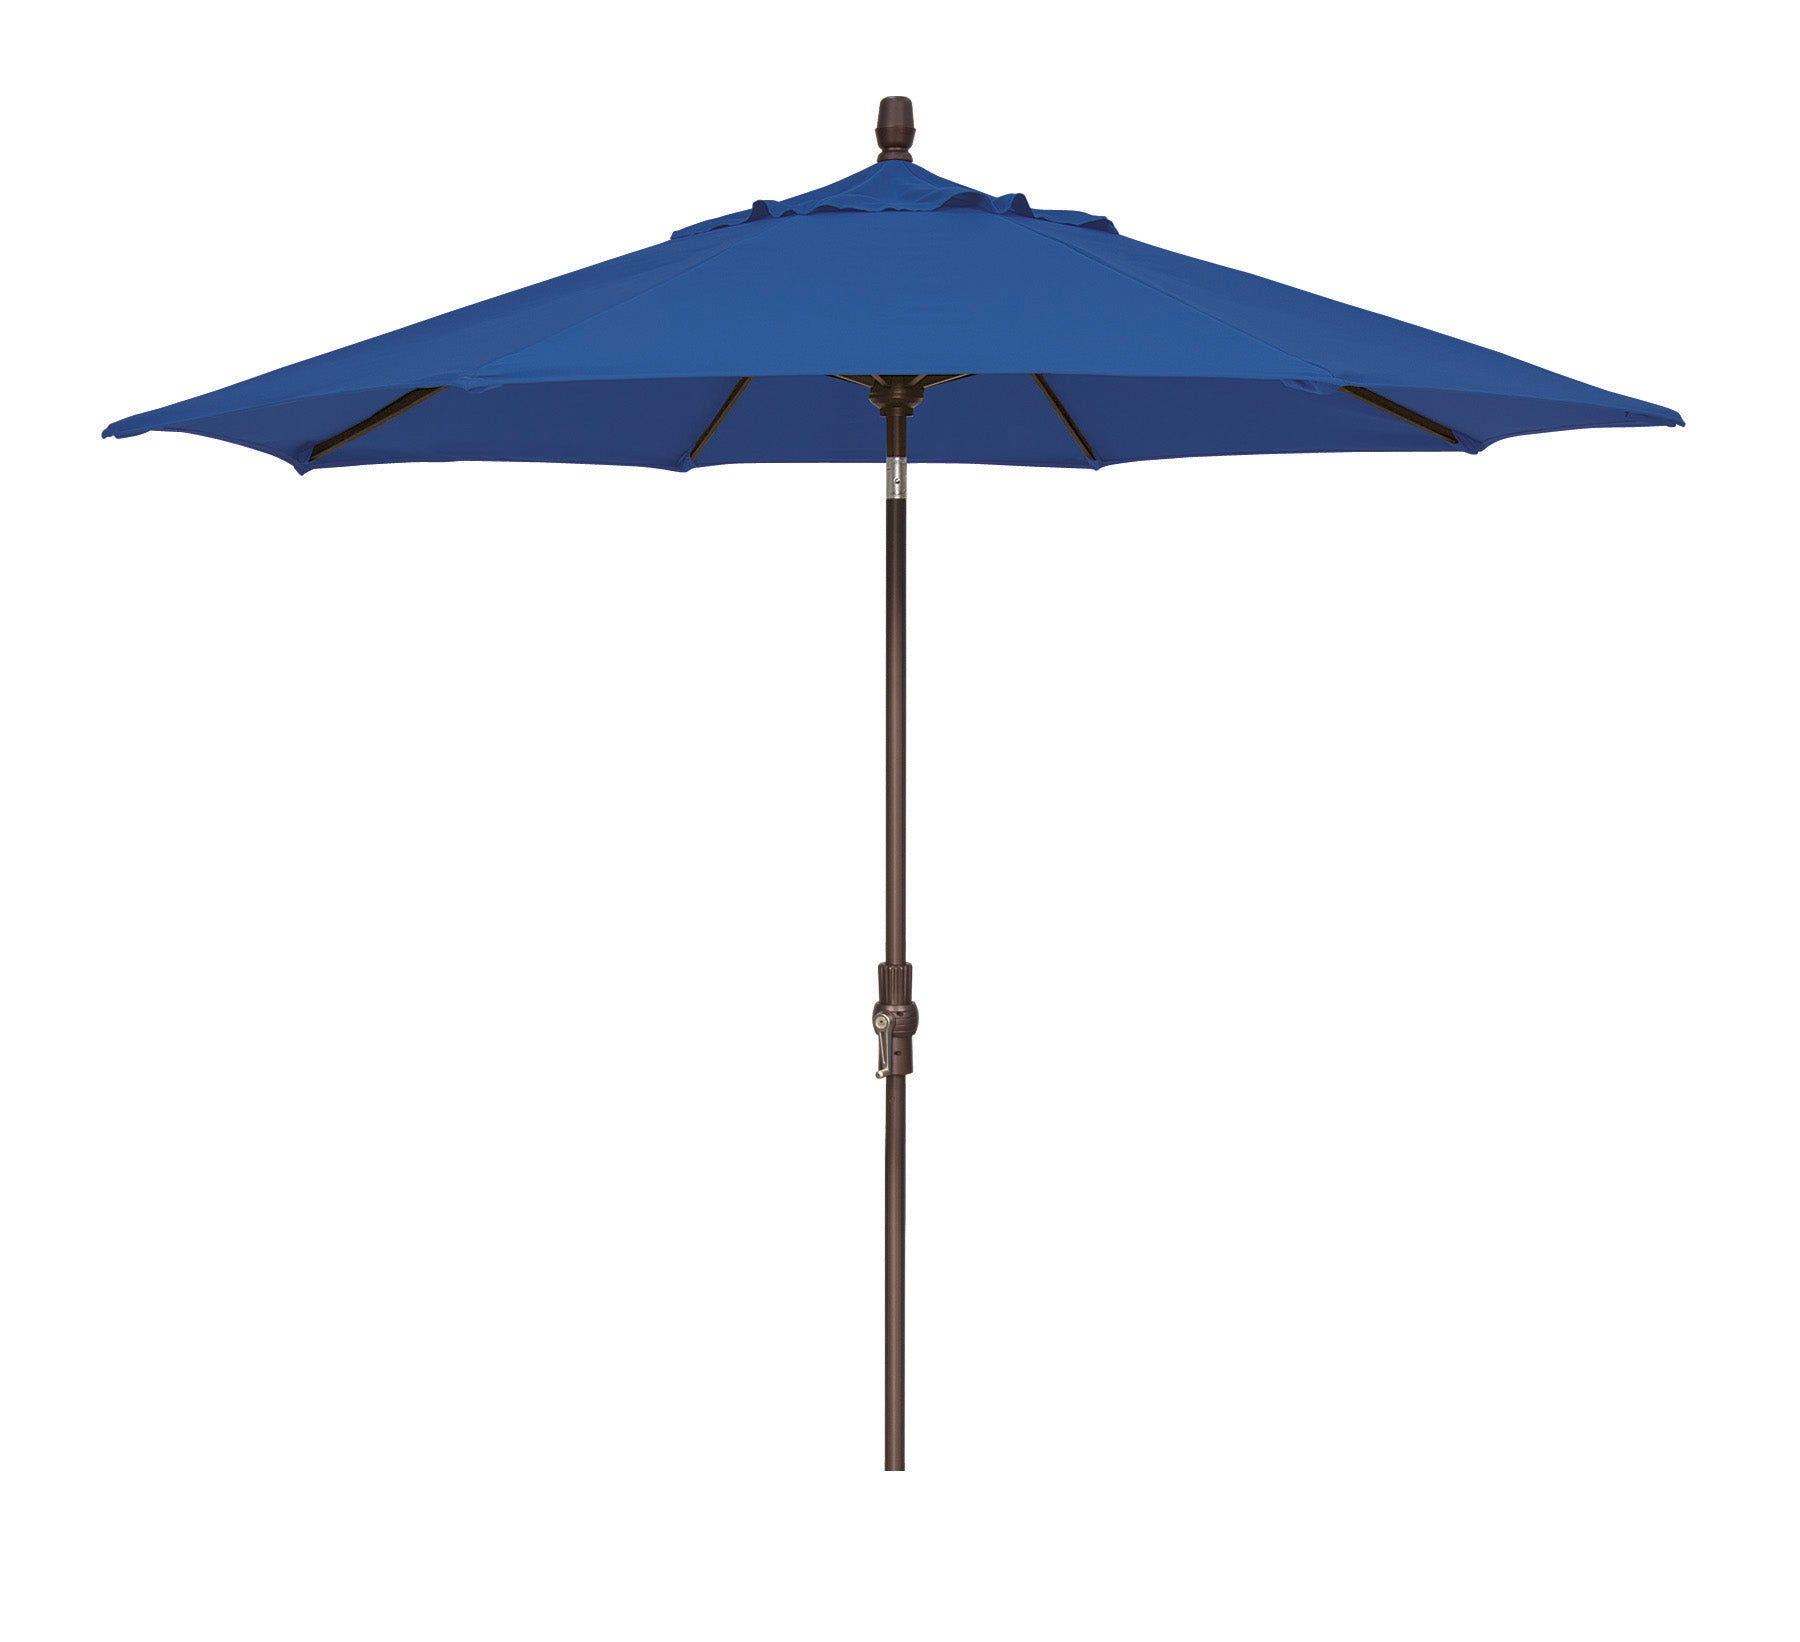 9 FT Deluxe Collar Tilt Market Umbrella <br> Bronze Aluminum Frame <br> Assorted Color Options